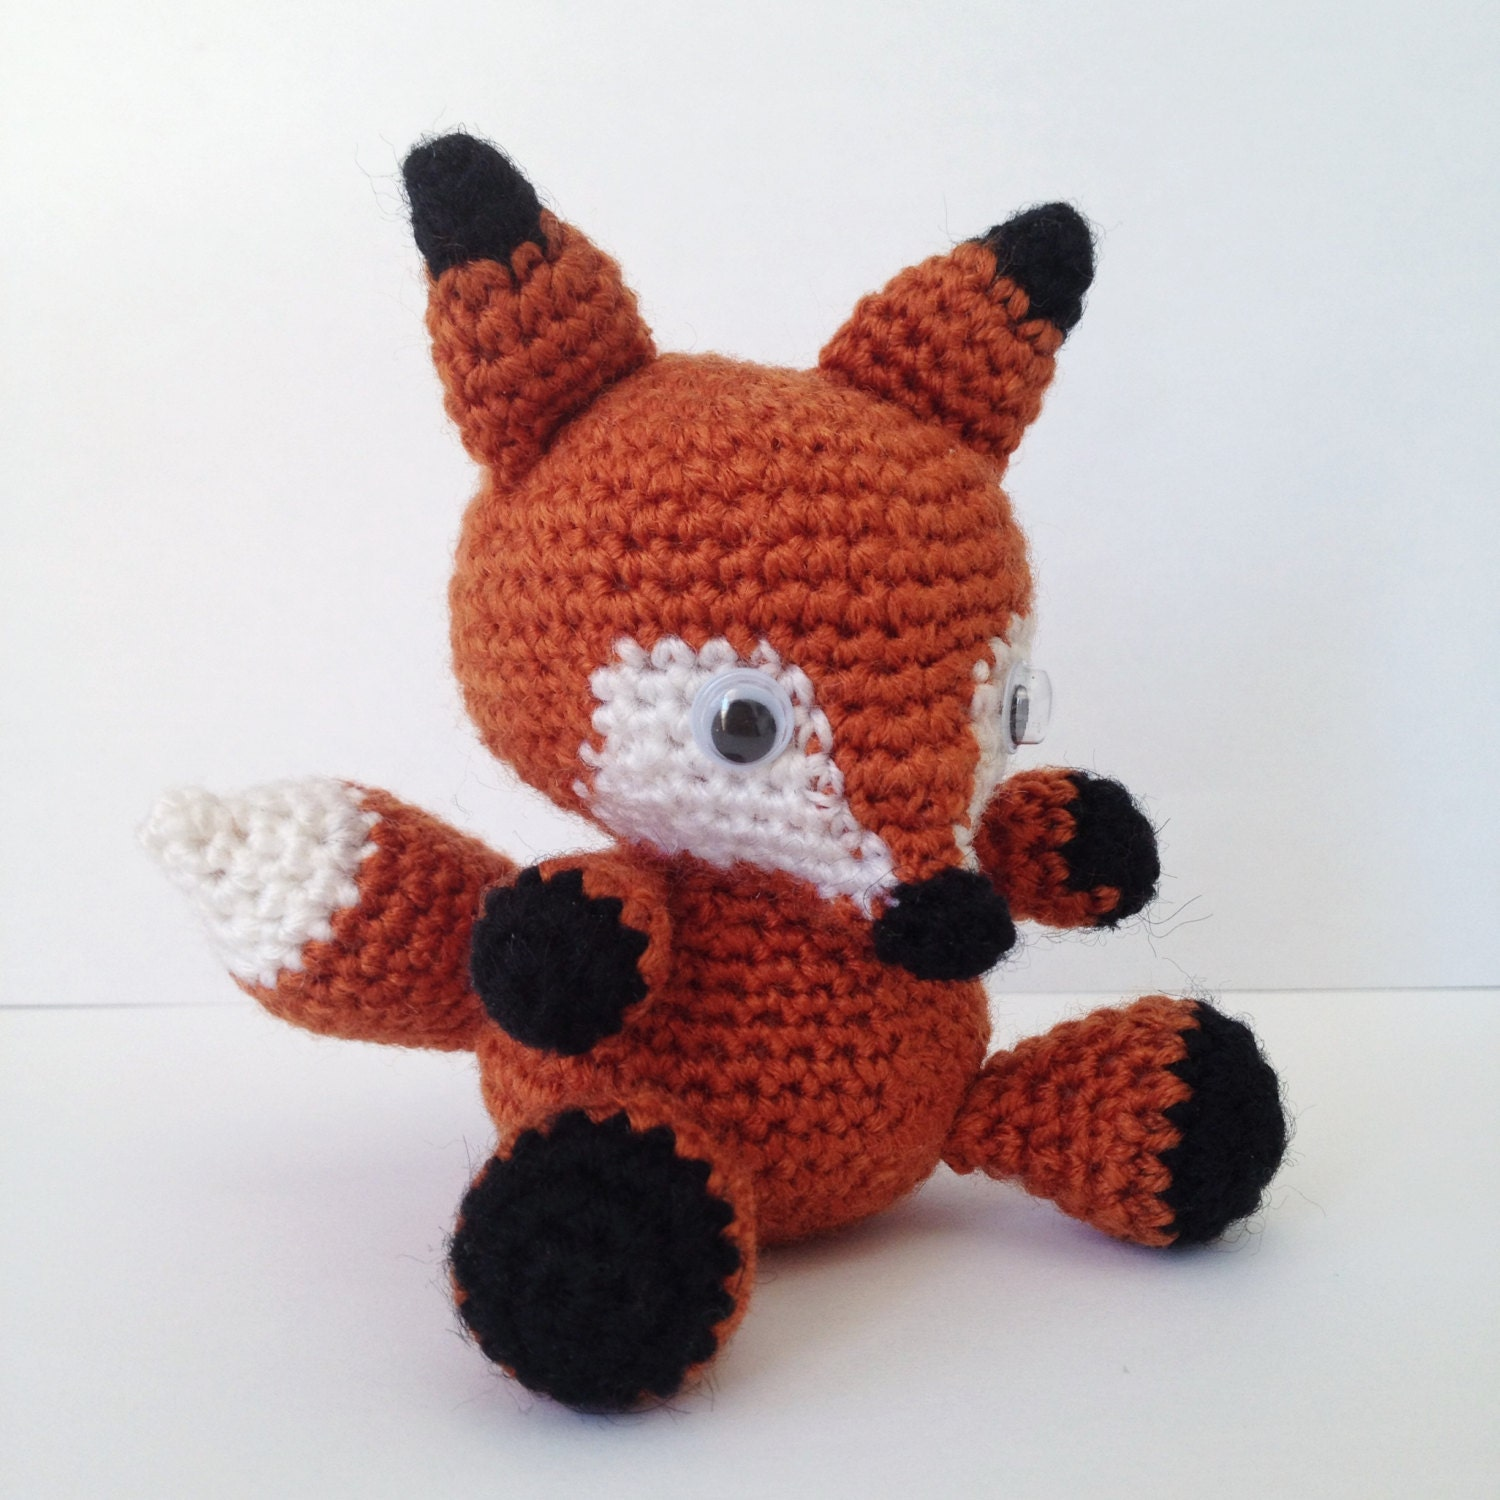 Amigurumi Red Panda : FOX Amigurumi Pattern Foxy Red Panda Baby Animal Easy DIY PDF